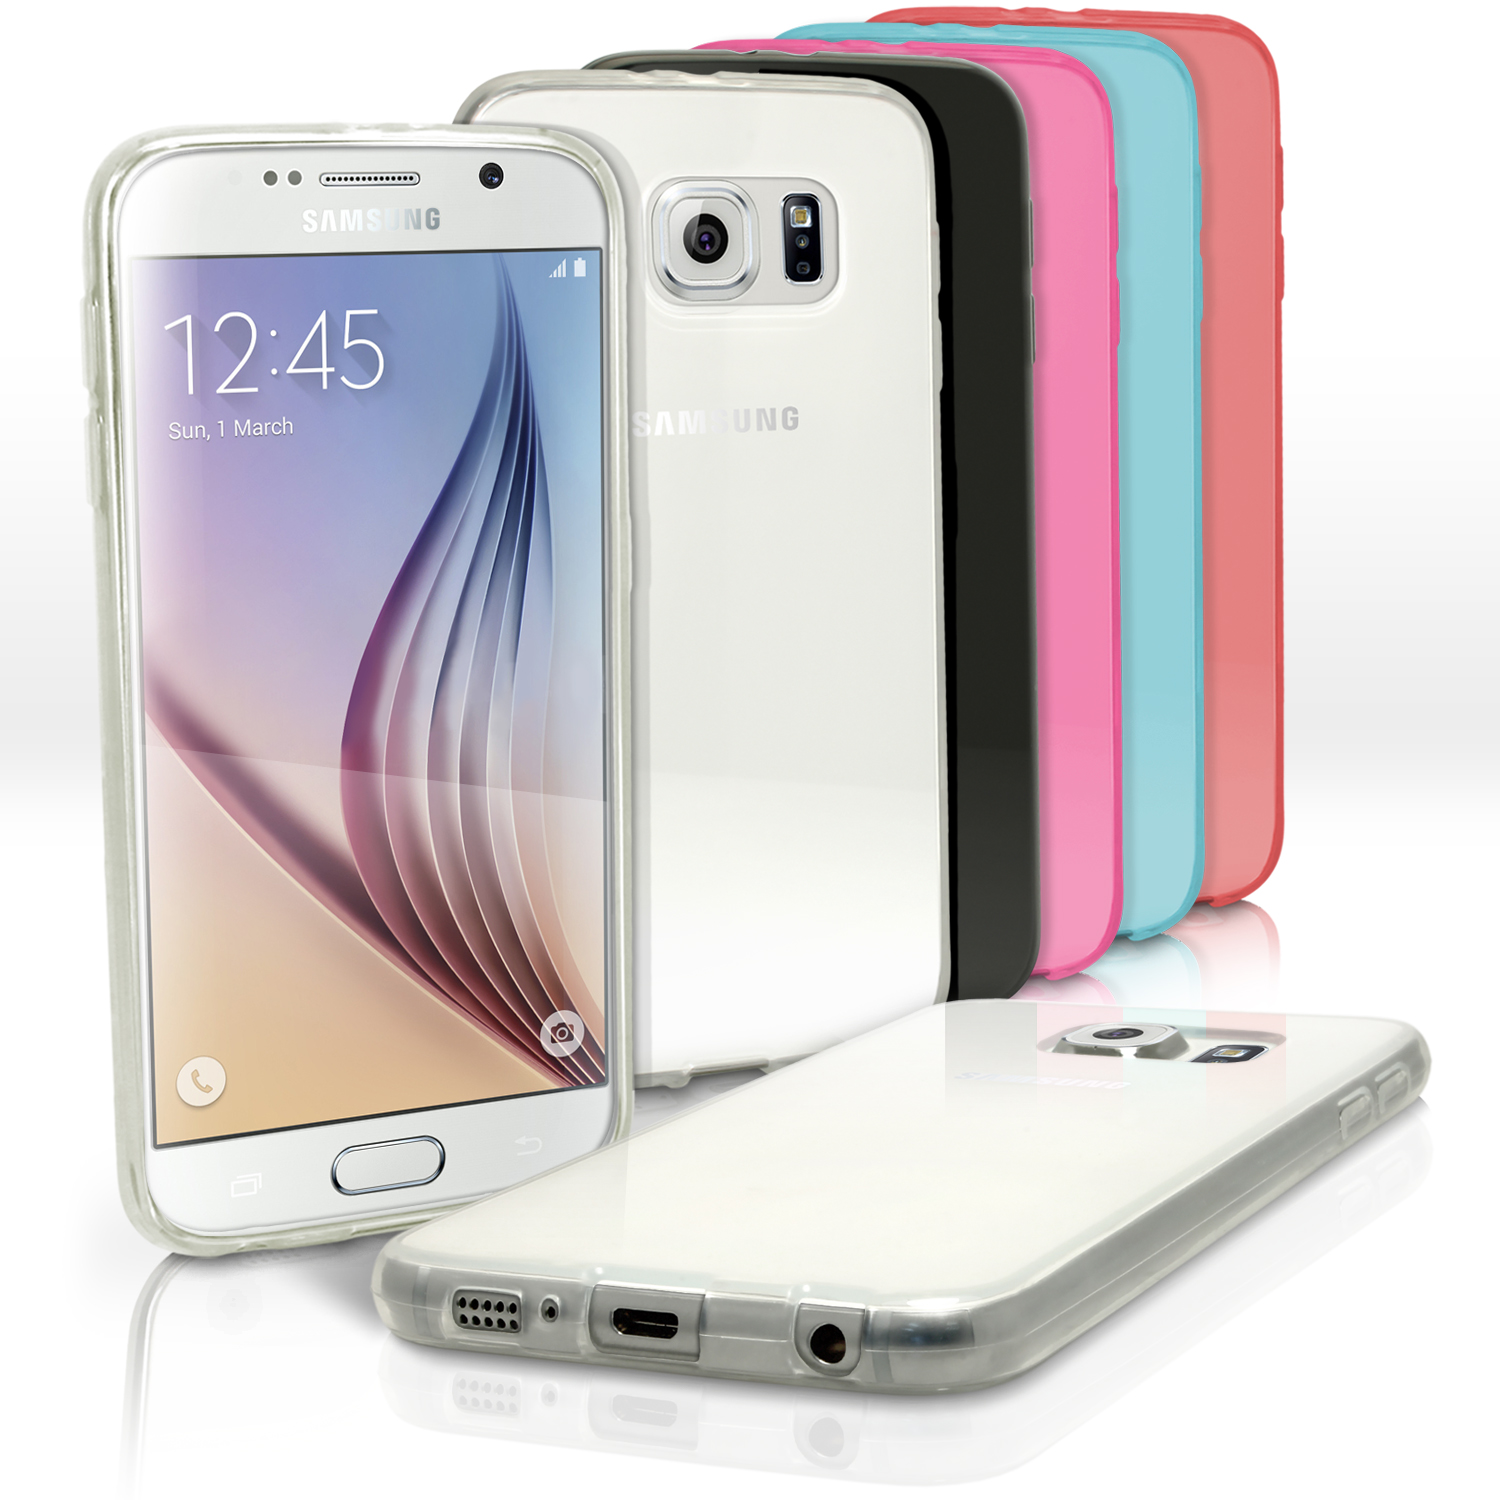 iGadgitz Glossy TPU Gel Skin Case Cover for Samsung Galaxy S6 SM-G920F + Screen Protector